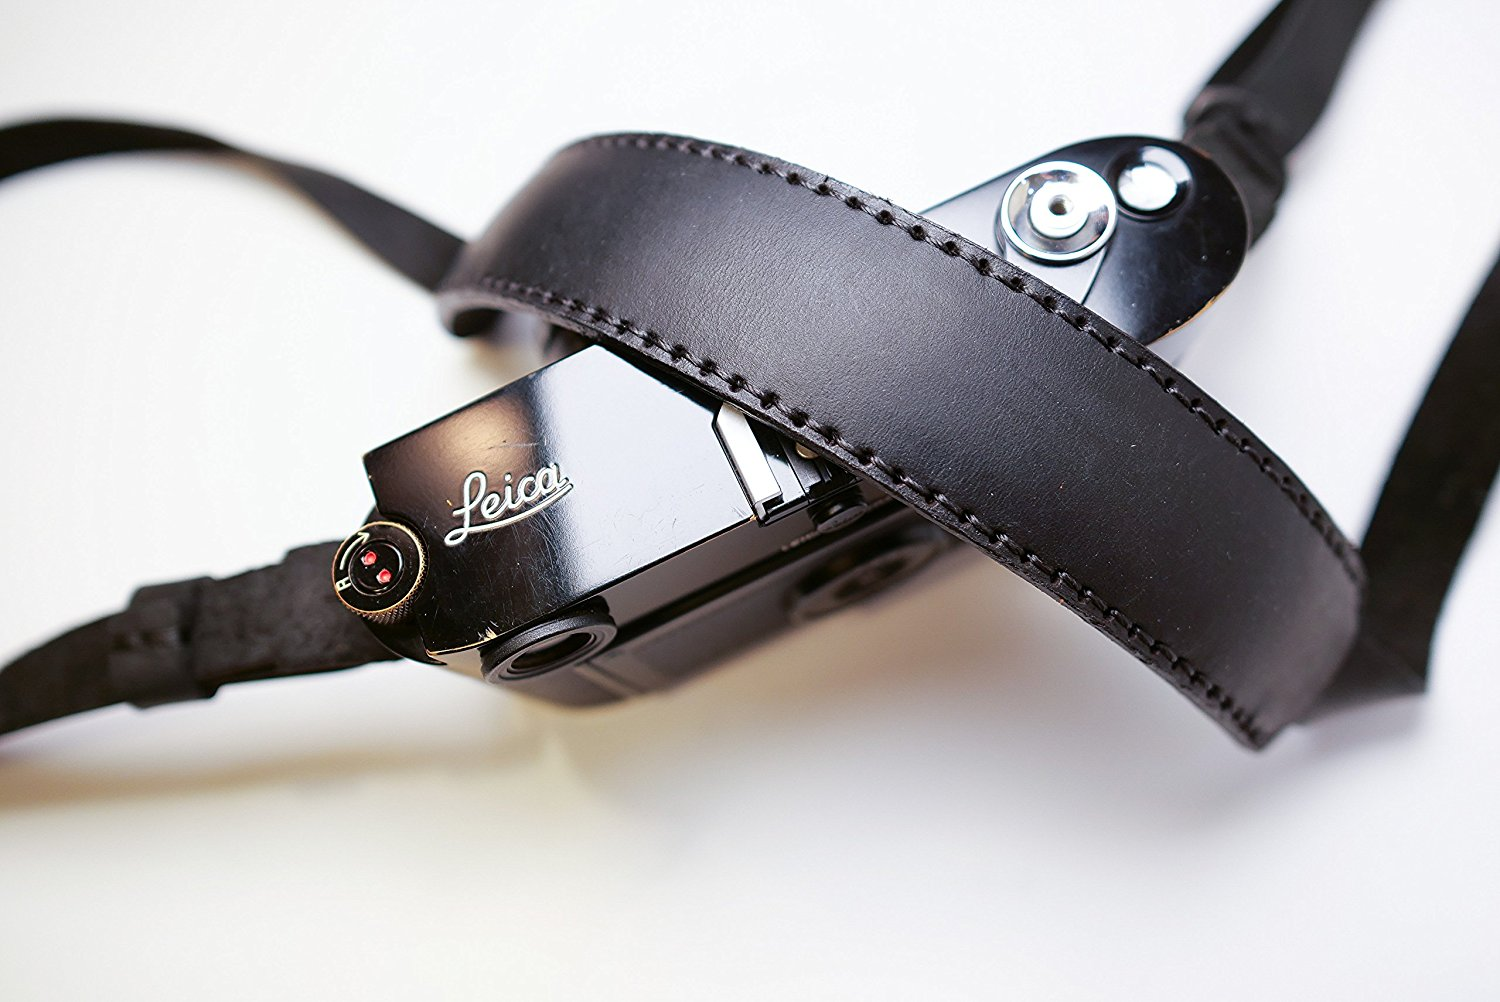 henri shoulder strap - phantom black.jpg